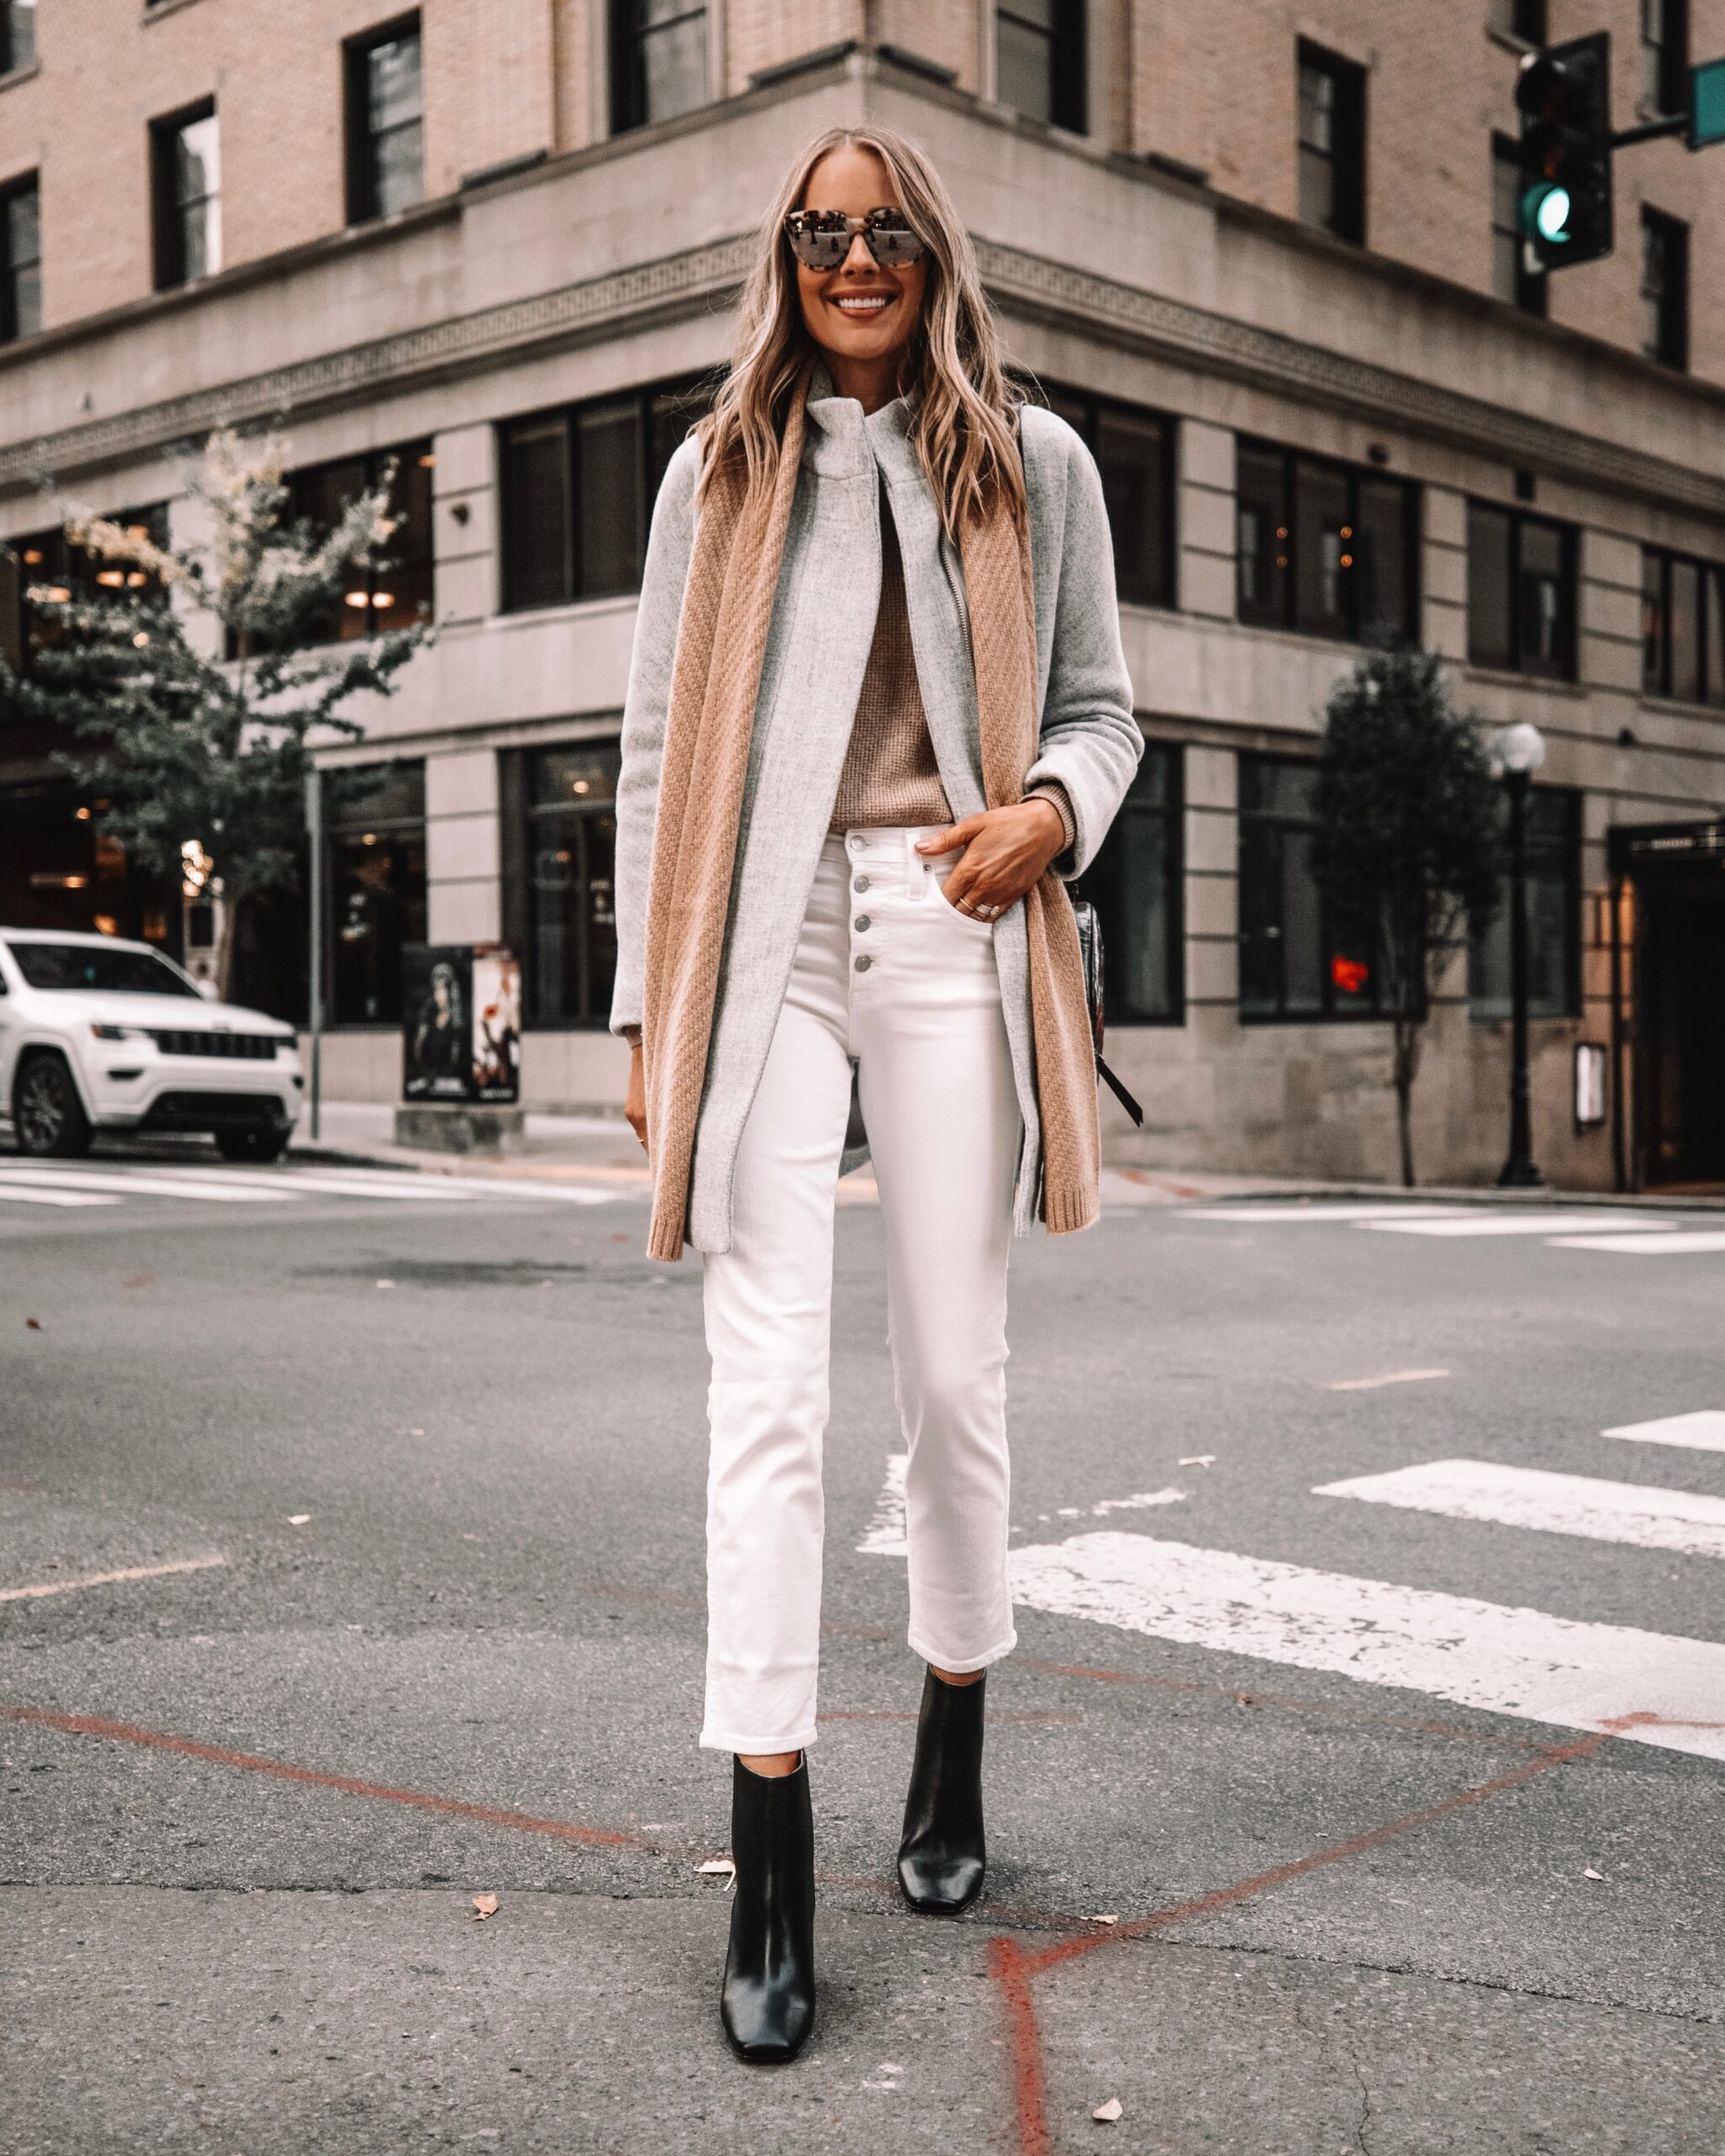 Fashion Jackson Wearing Jcrew Grey Coat White Jeans Camel Scarf Black Booties Winter Outfit